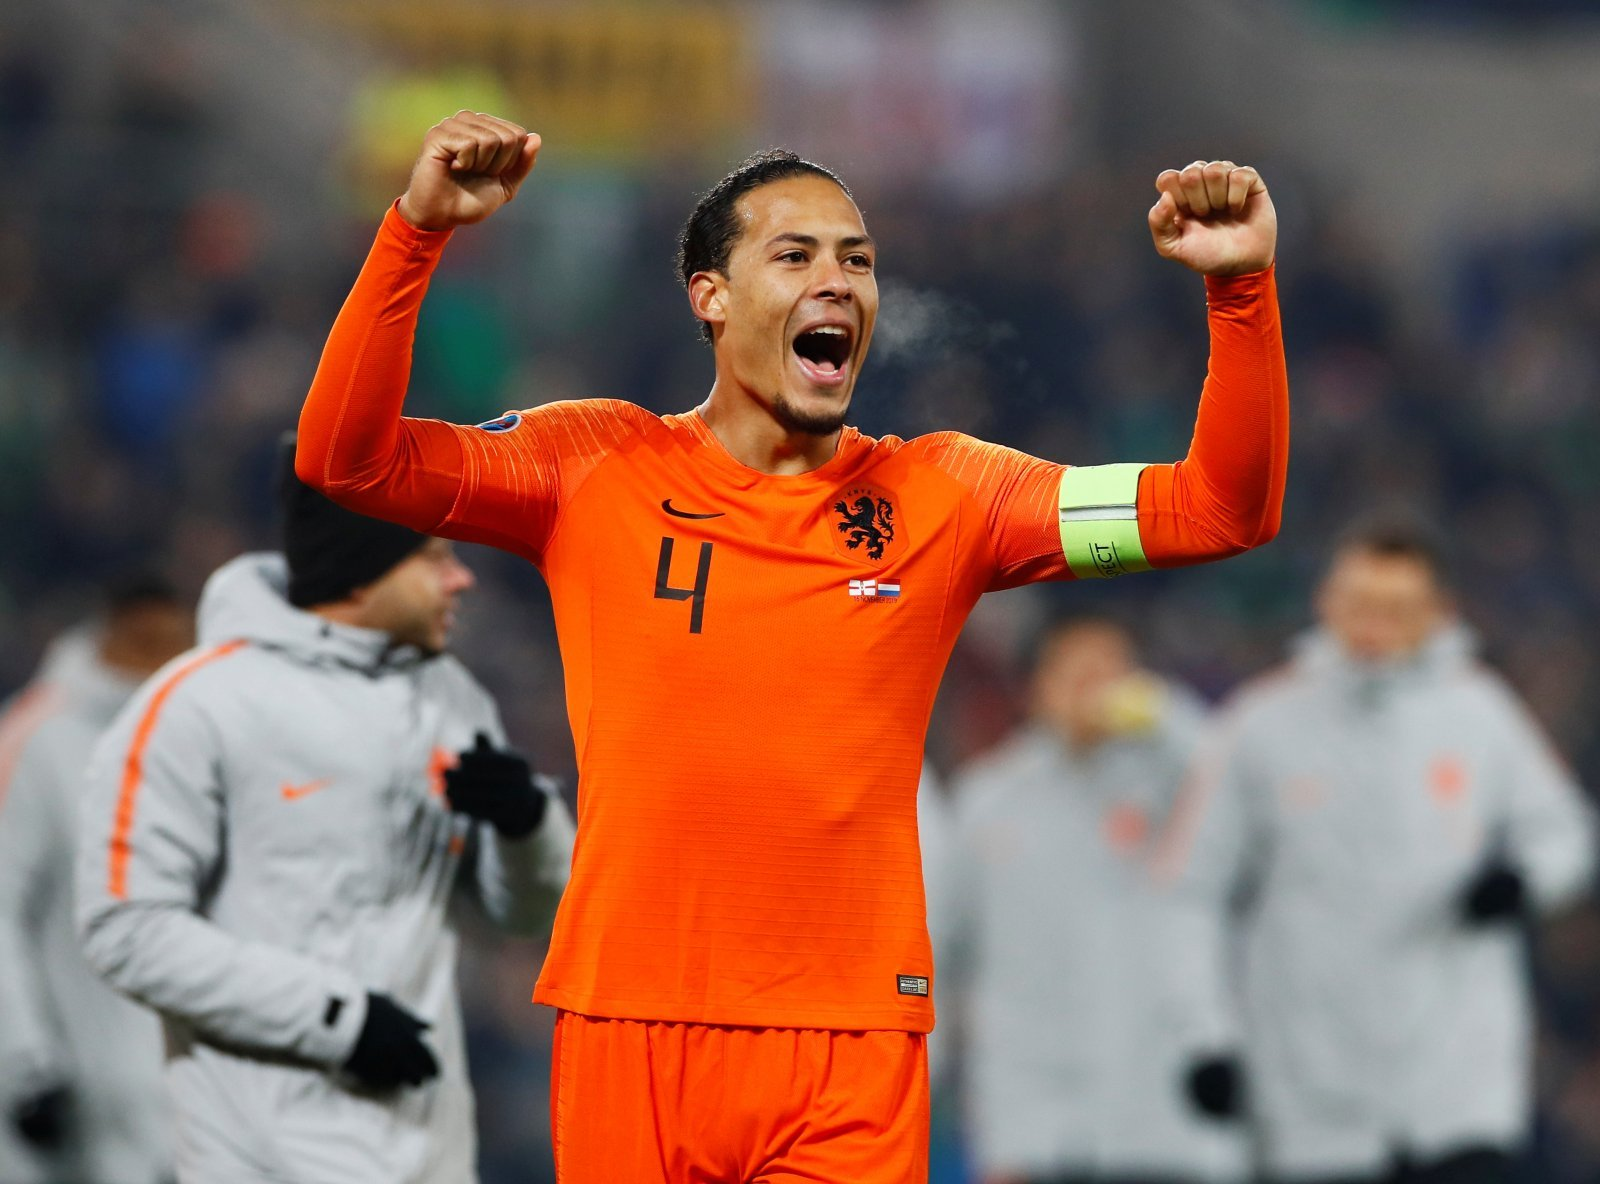 Liverpool: Fans pleased about Virgil van Dijk's withdrawal from Netherlands' squad